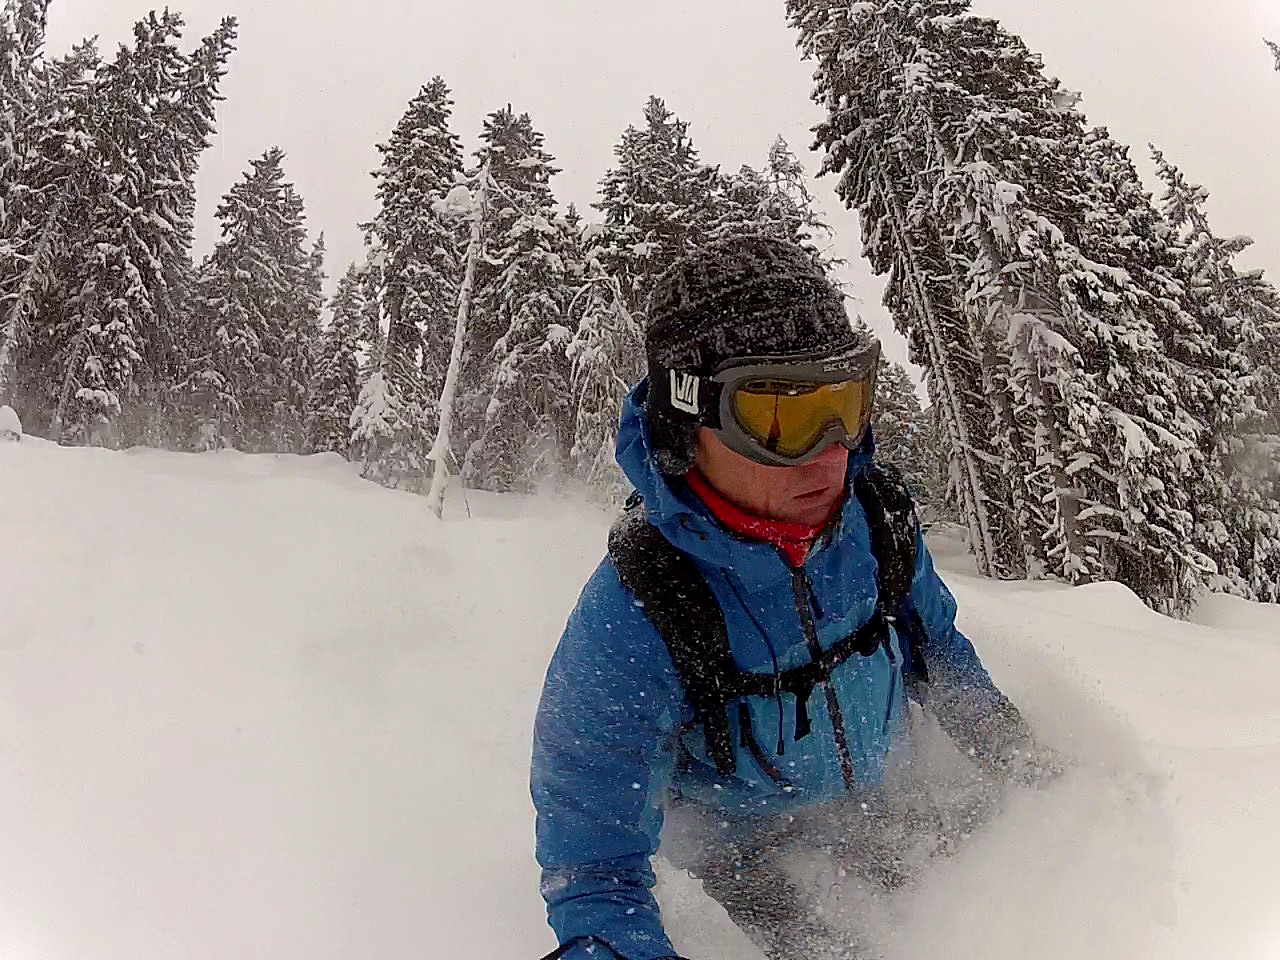 Jem in the St Gervais trees in superb snow, Saint Gervais